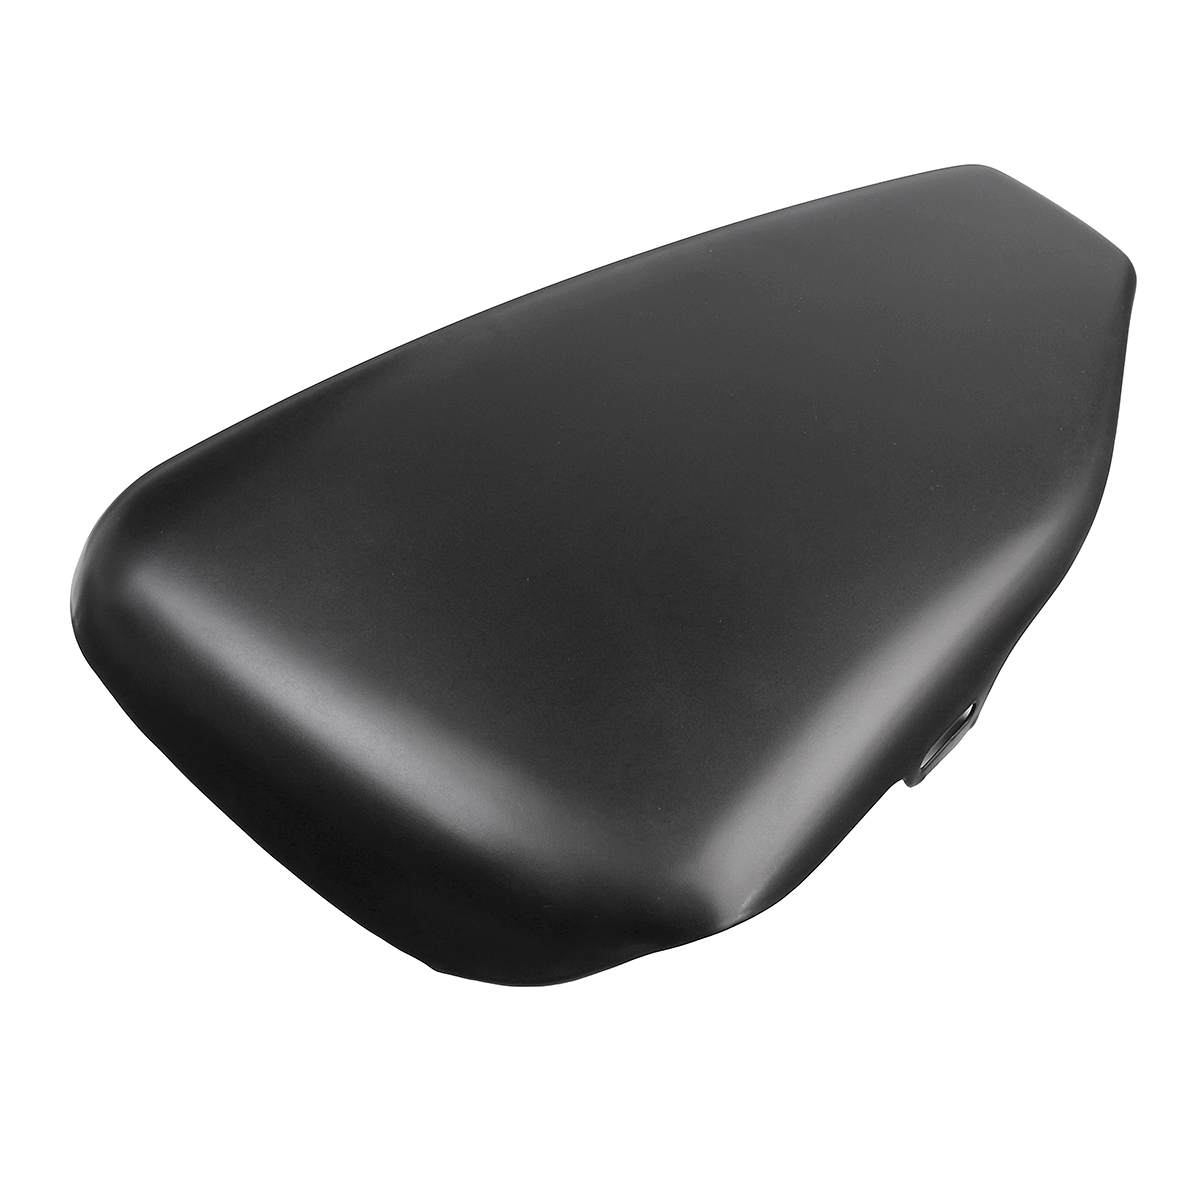 Left Motorcycle Battery Cover Matte/Glossy For Harley Sportster XL883 XL1200 2014-2017